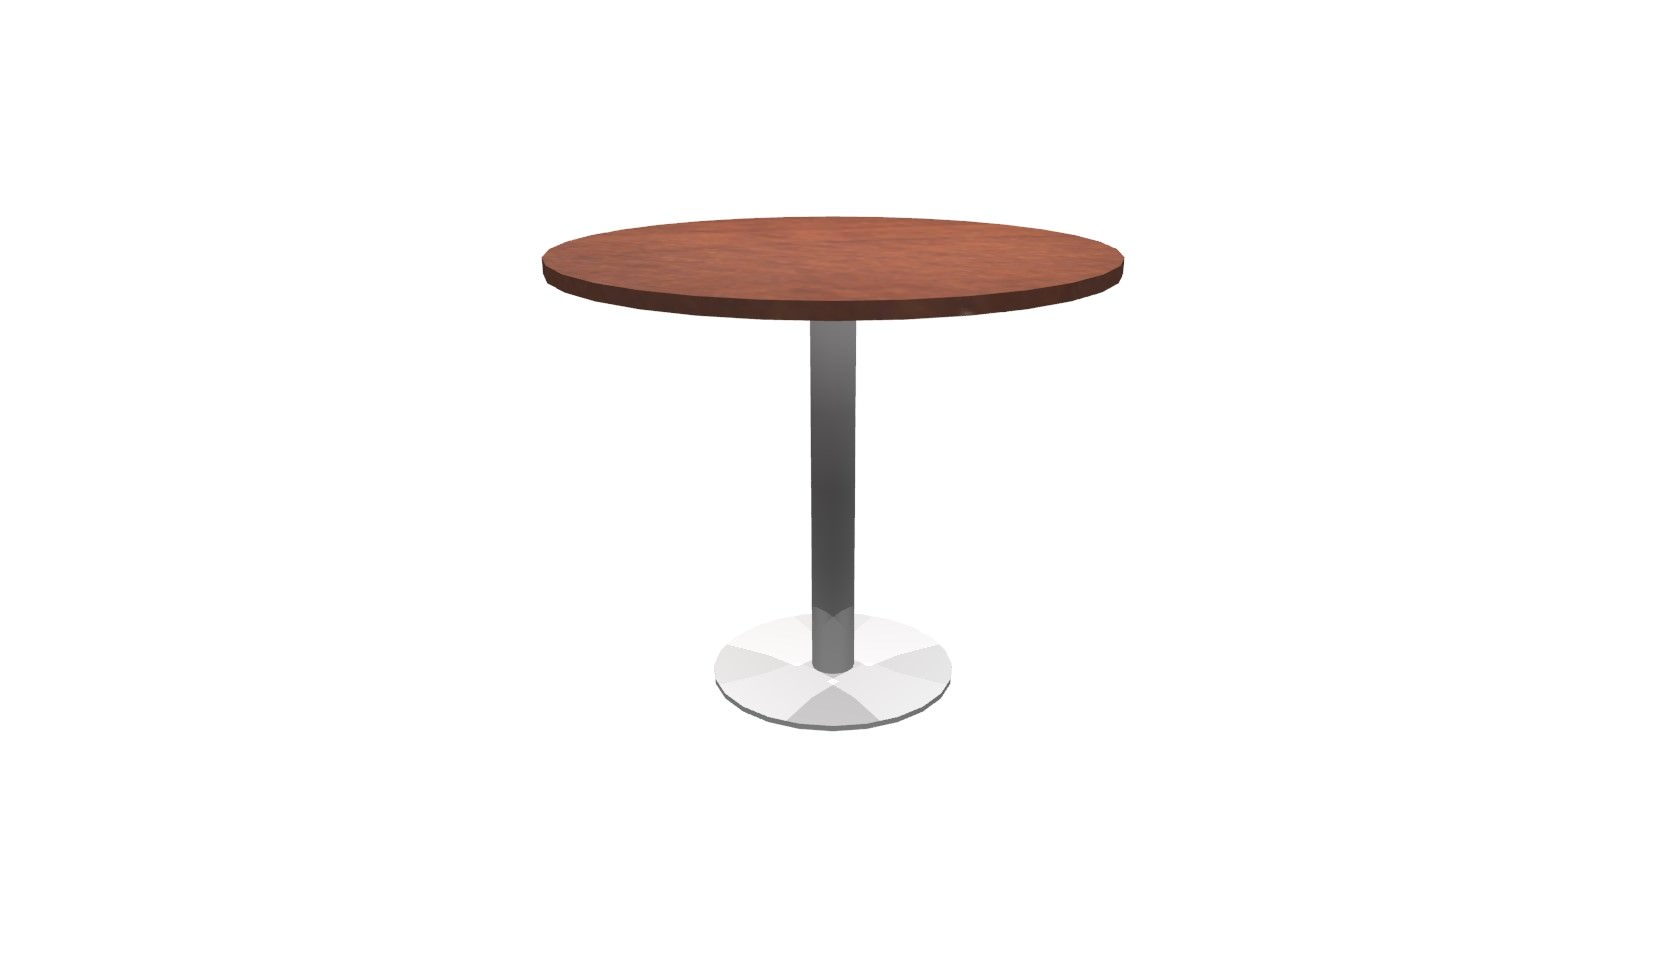 Inch Round Conference Table Cherry Brushed Metal - 36 inch round conference table